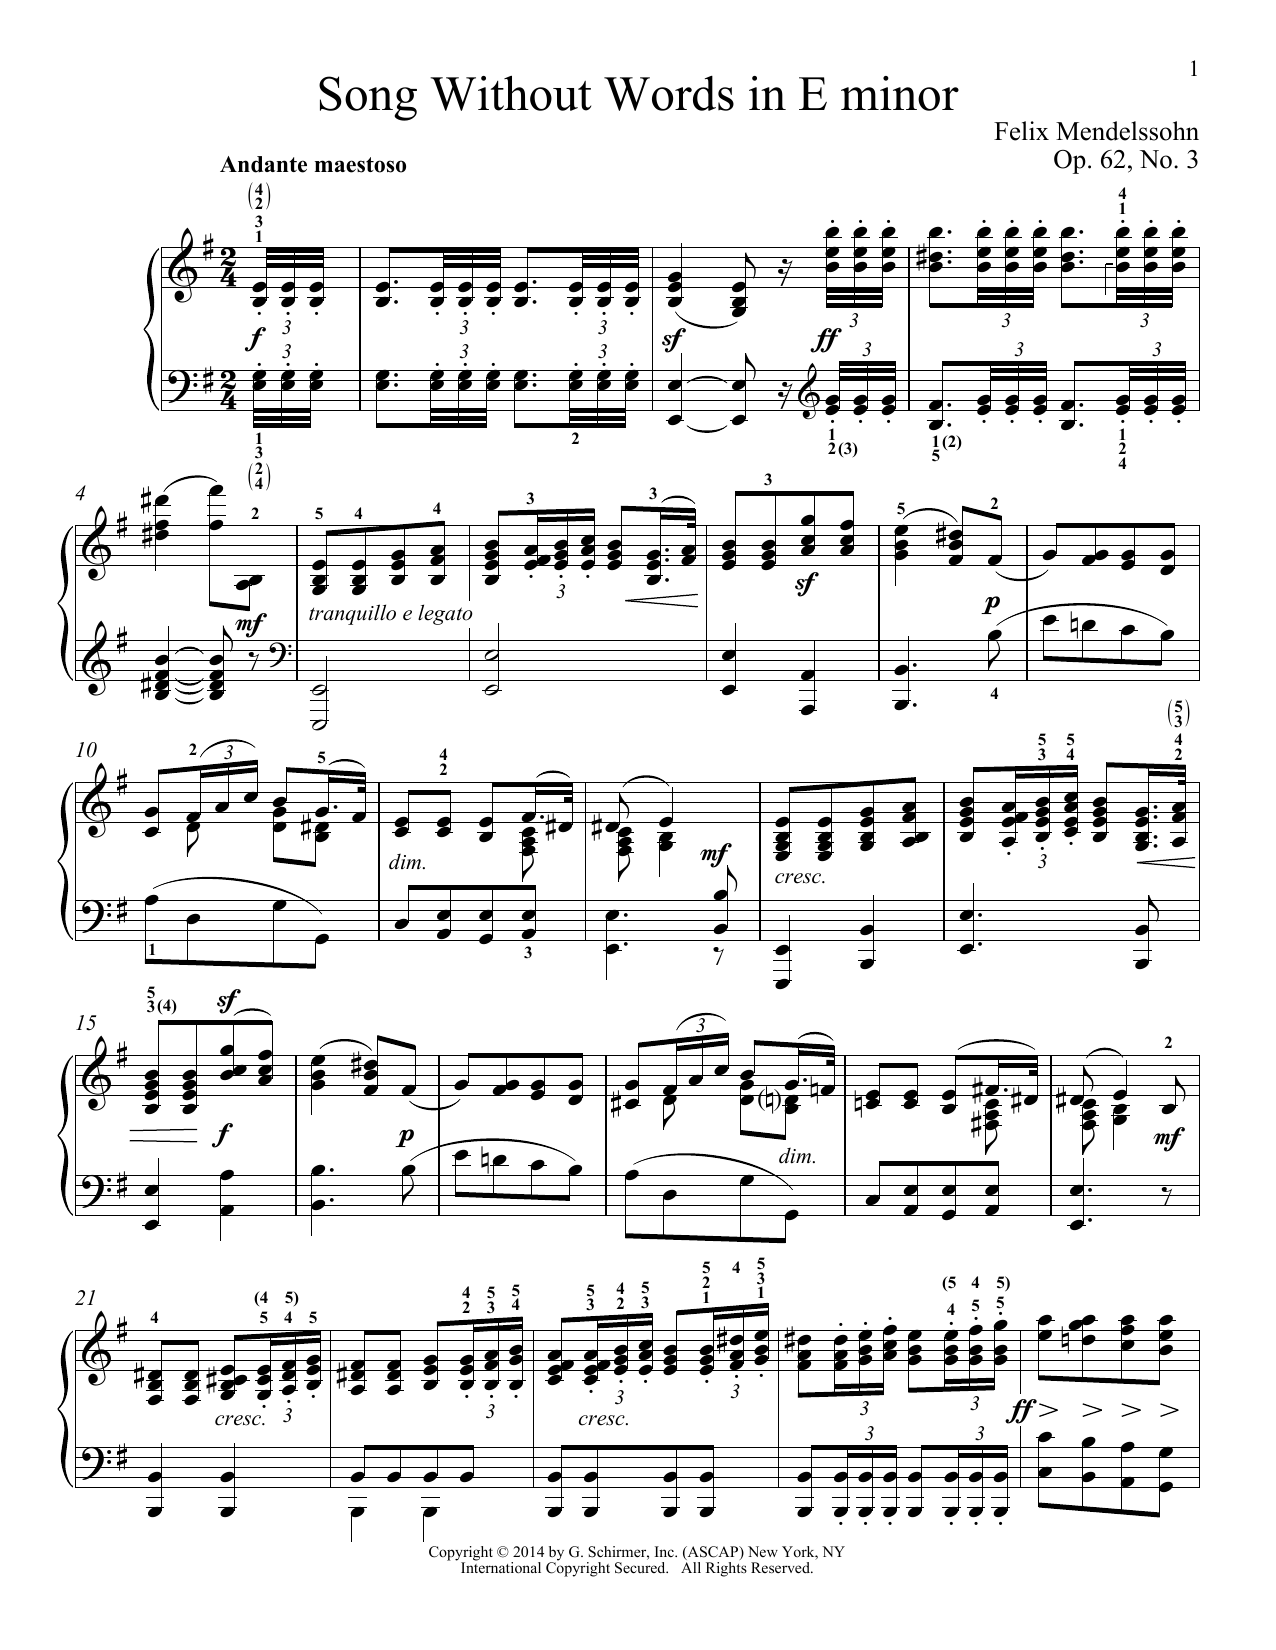 Download Felix Mendelssohn 'Song Without Words In E Minor, Op. 52, No. 3' Digital Sheet Music Notes & Chords and start playing in minutes